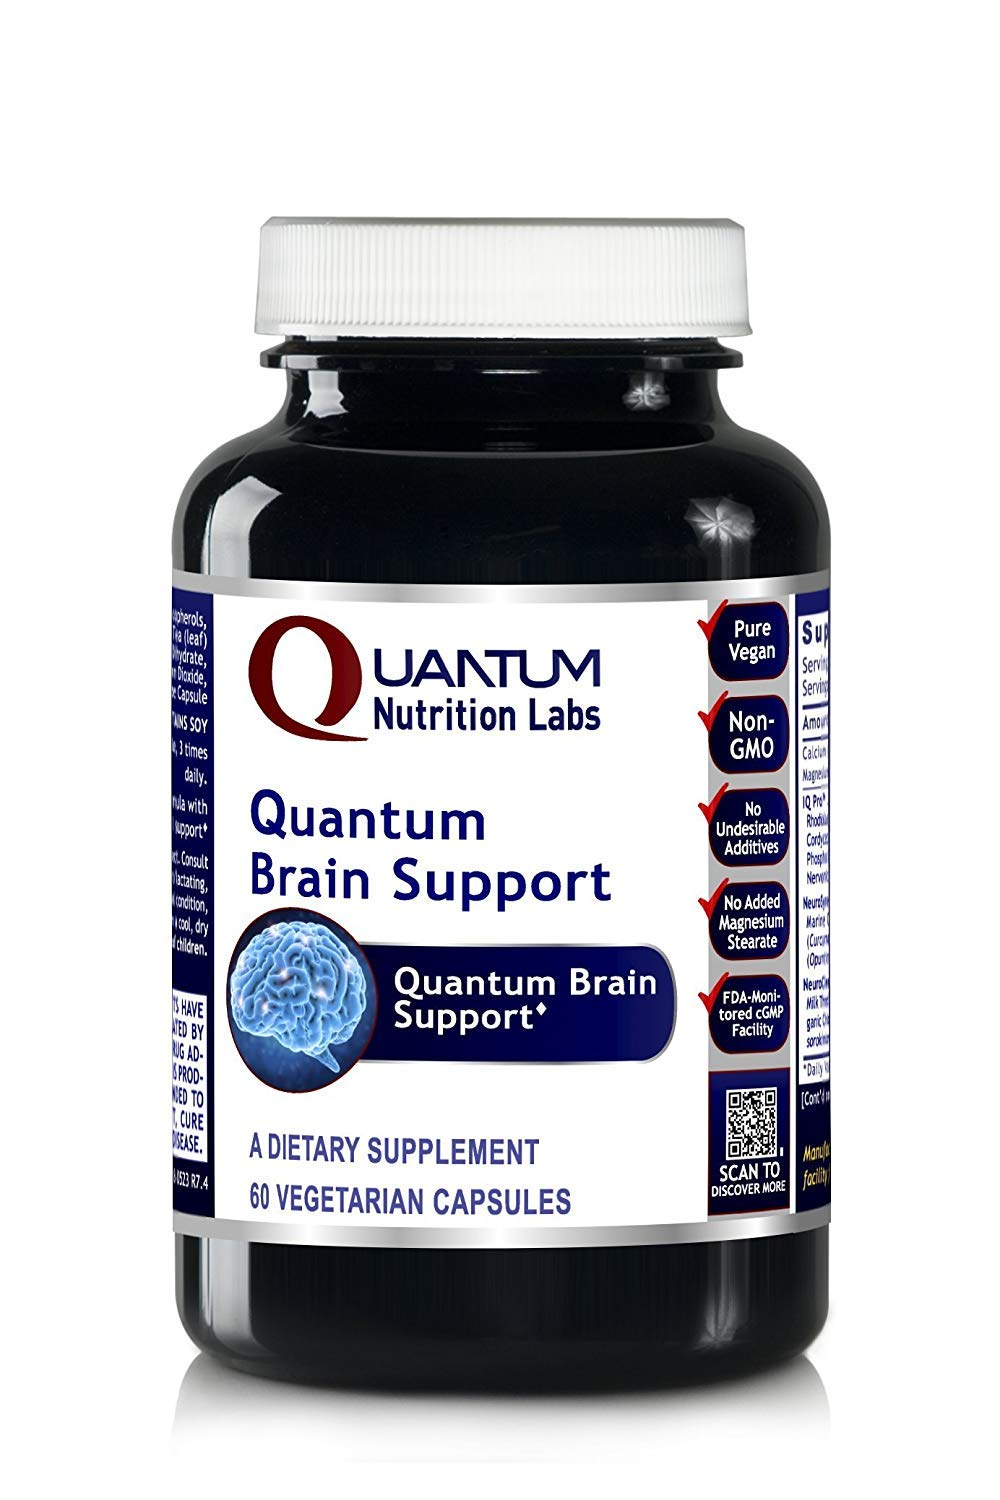 Quantum Brain Support, 240 VCaps 4 Bottles - Quantum-State Brain/Cereven Support for Mental Performance, Concentration and Memory